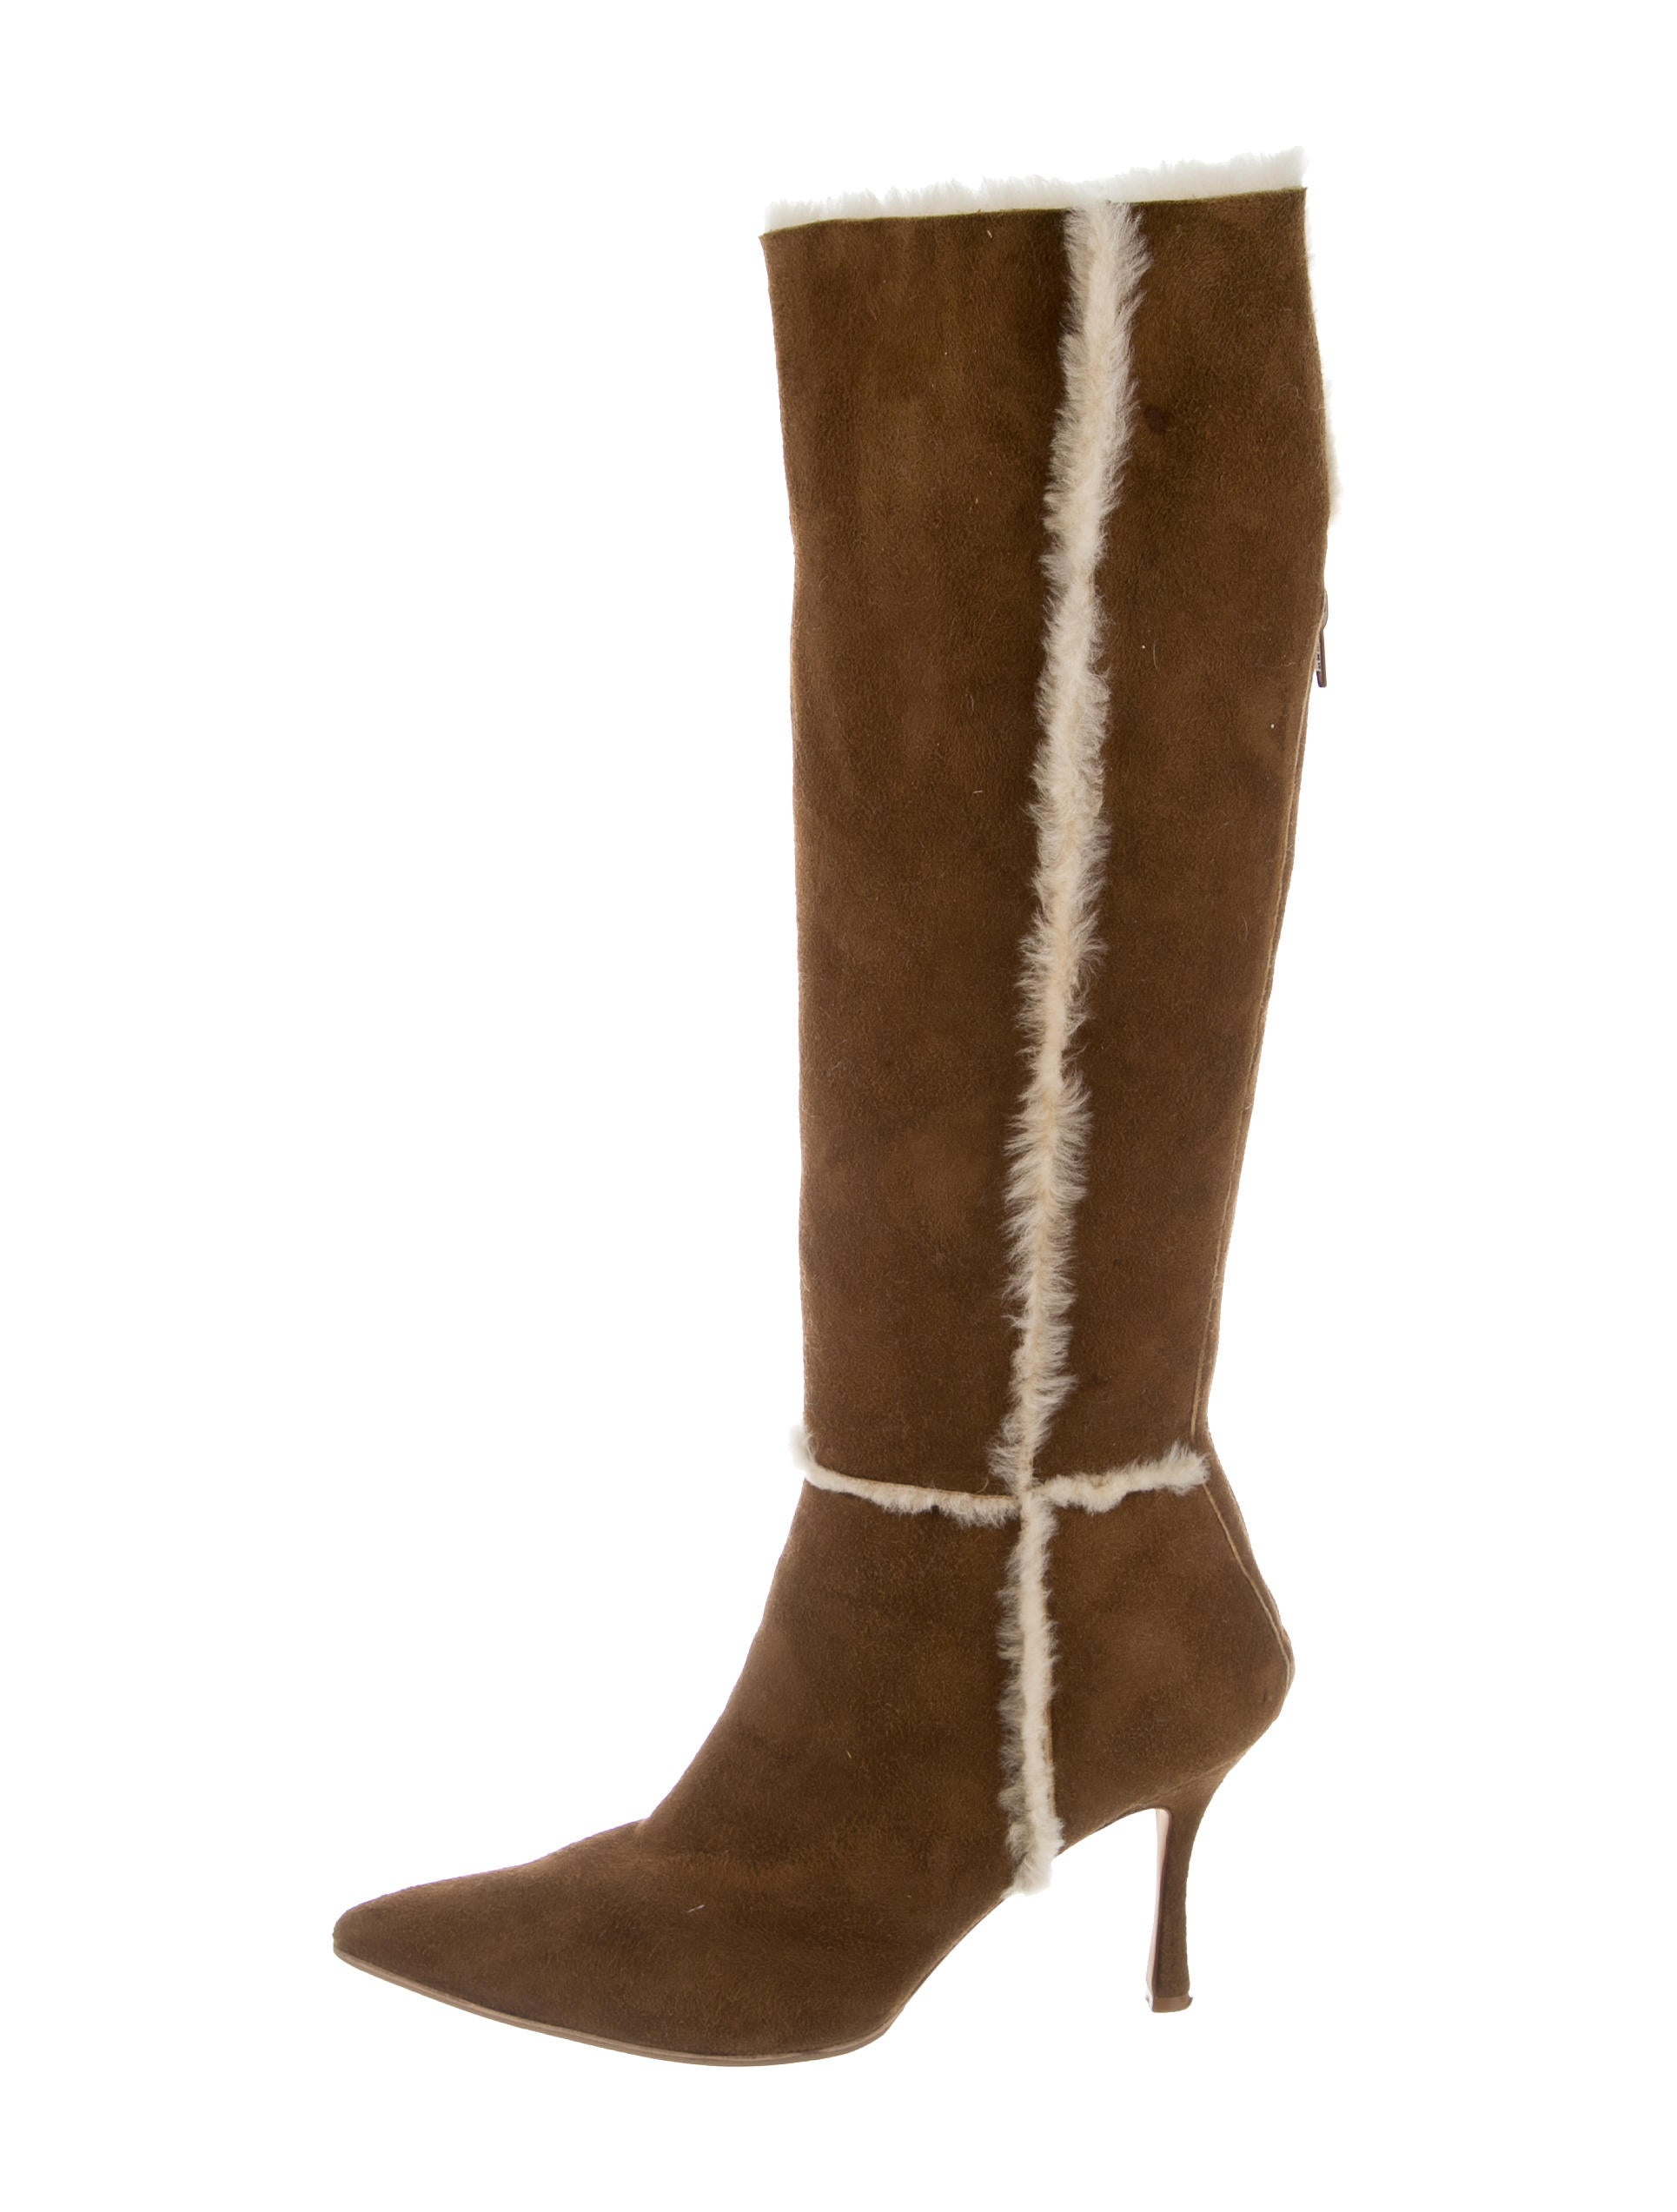 manolo blahnik knee high shearling boots shoes